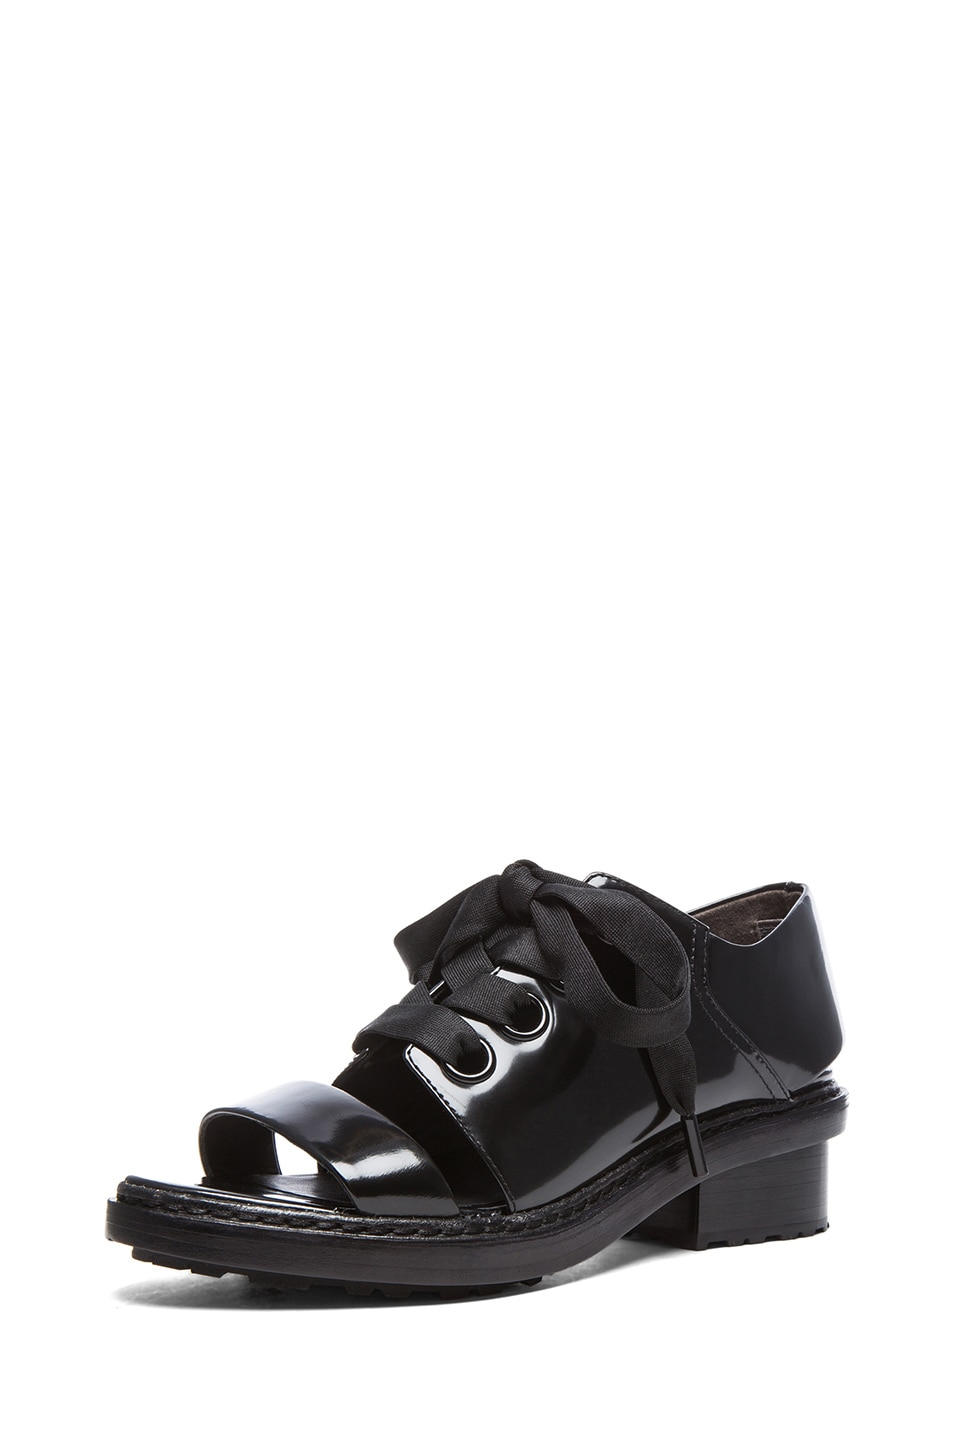 Image 2 of 3.1 phillip lim Floreana Open Toe Lace up Leather Booties in Black